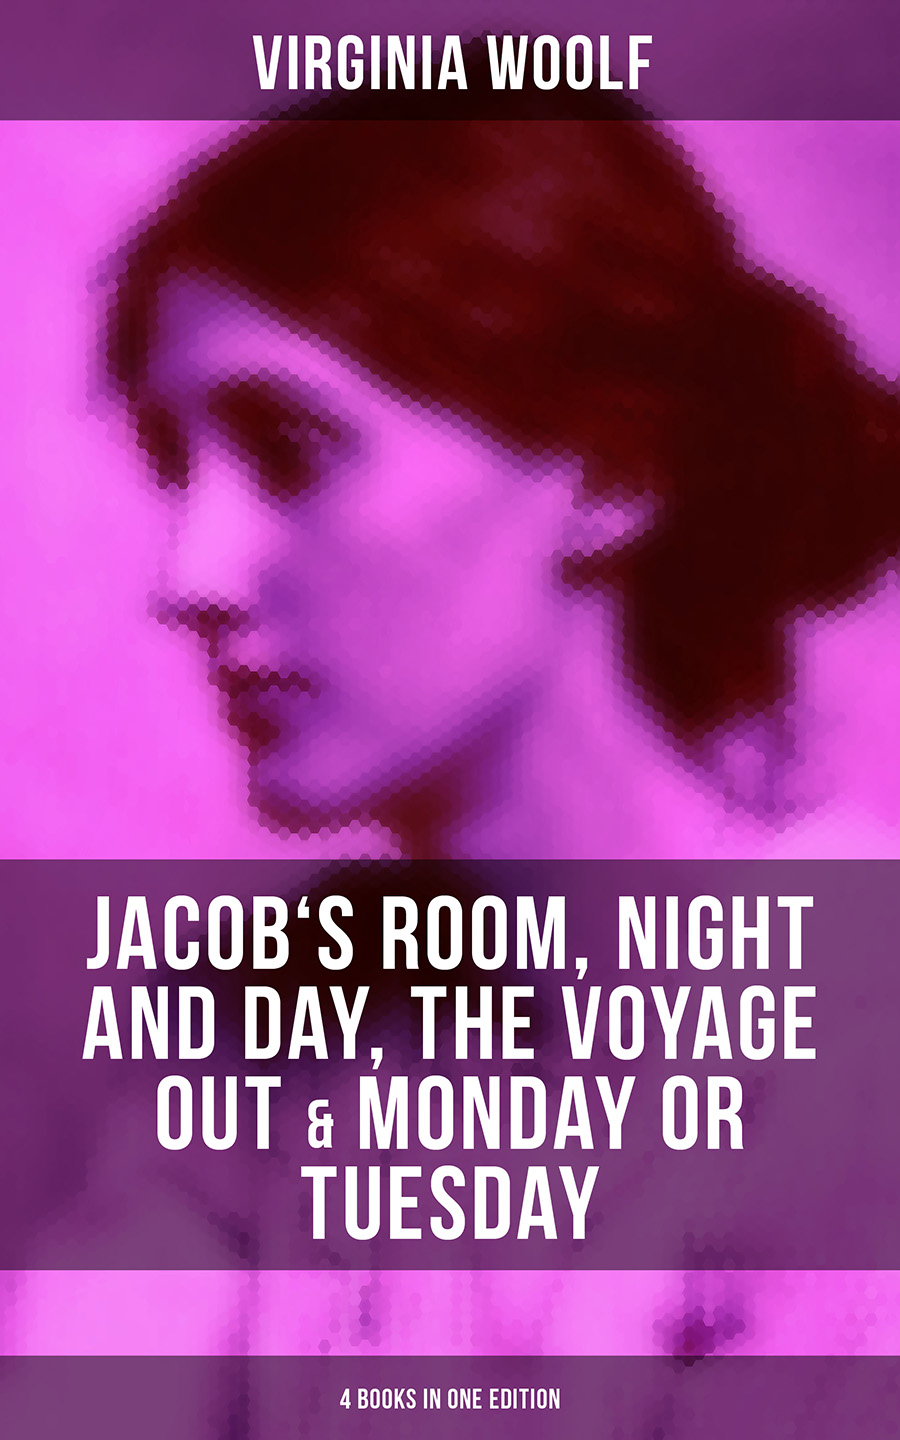 Virginia Woolf Virginia Woolf: Jacob's Room, Night and Day, The Voyage Out & Monday or Tuesday (4 Books in One Edition) woolf v night and day isbn 9785521057955